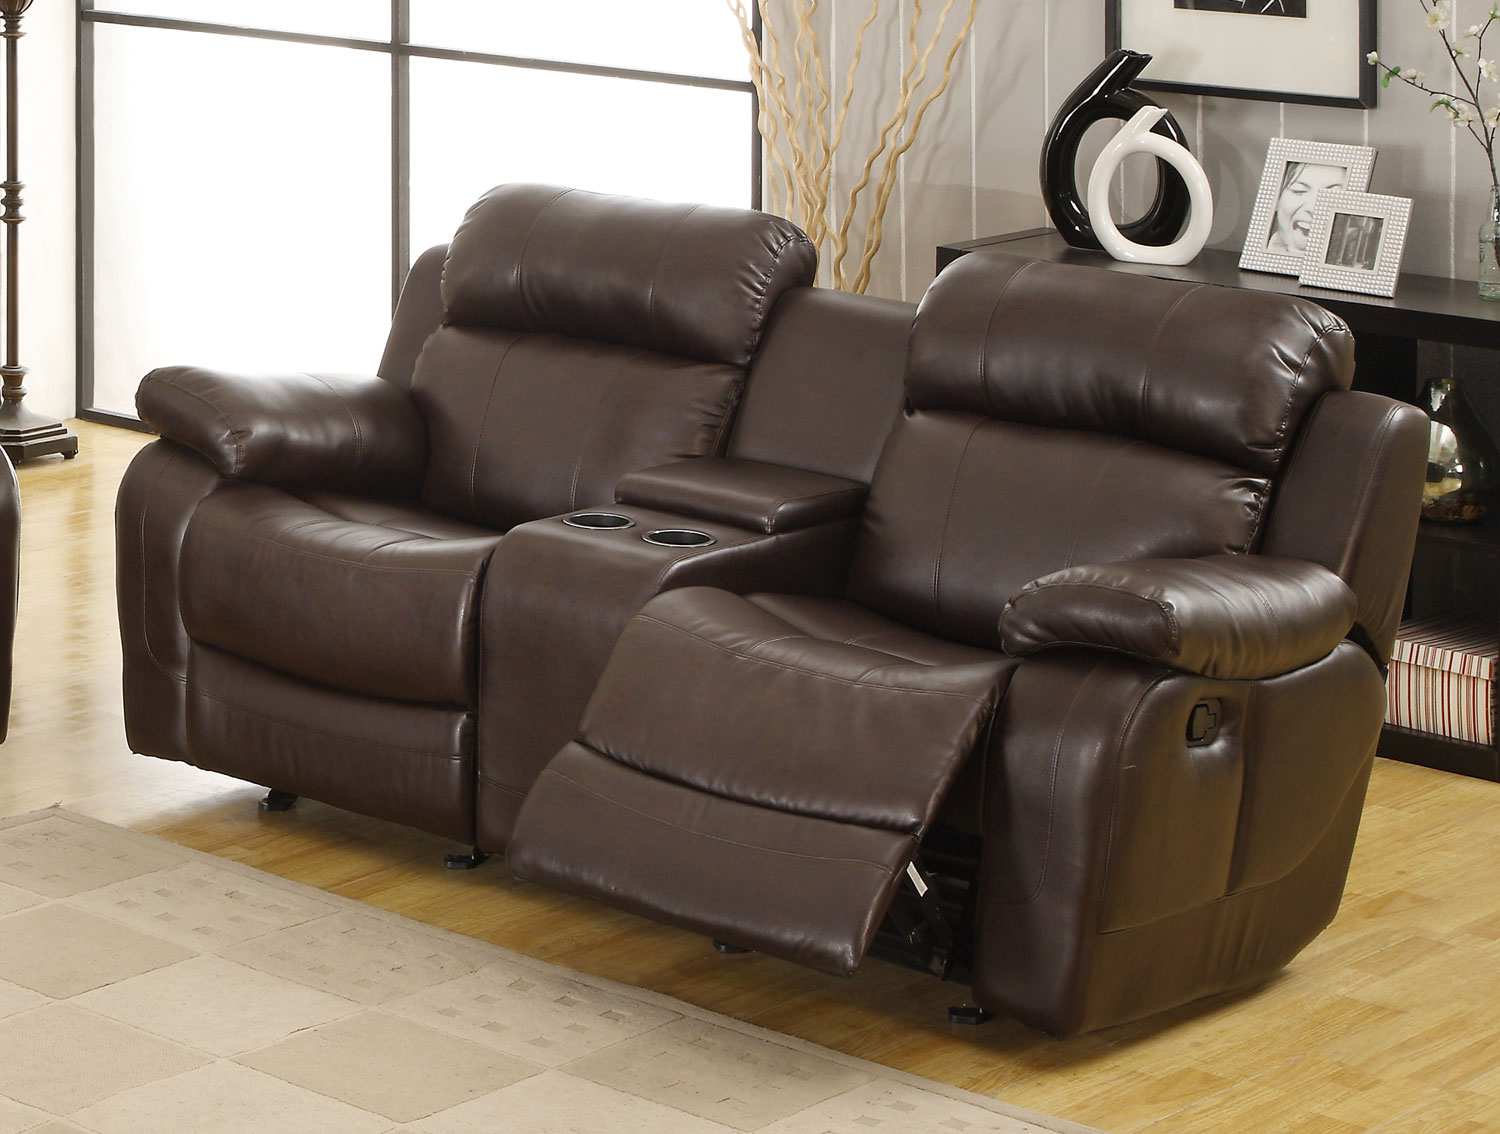 Marille Love Seat Glider Recliner with Center Console - Dark Brown - Bonded Leather Match